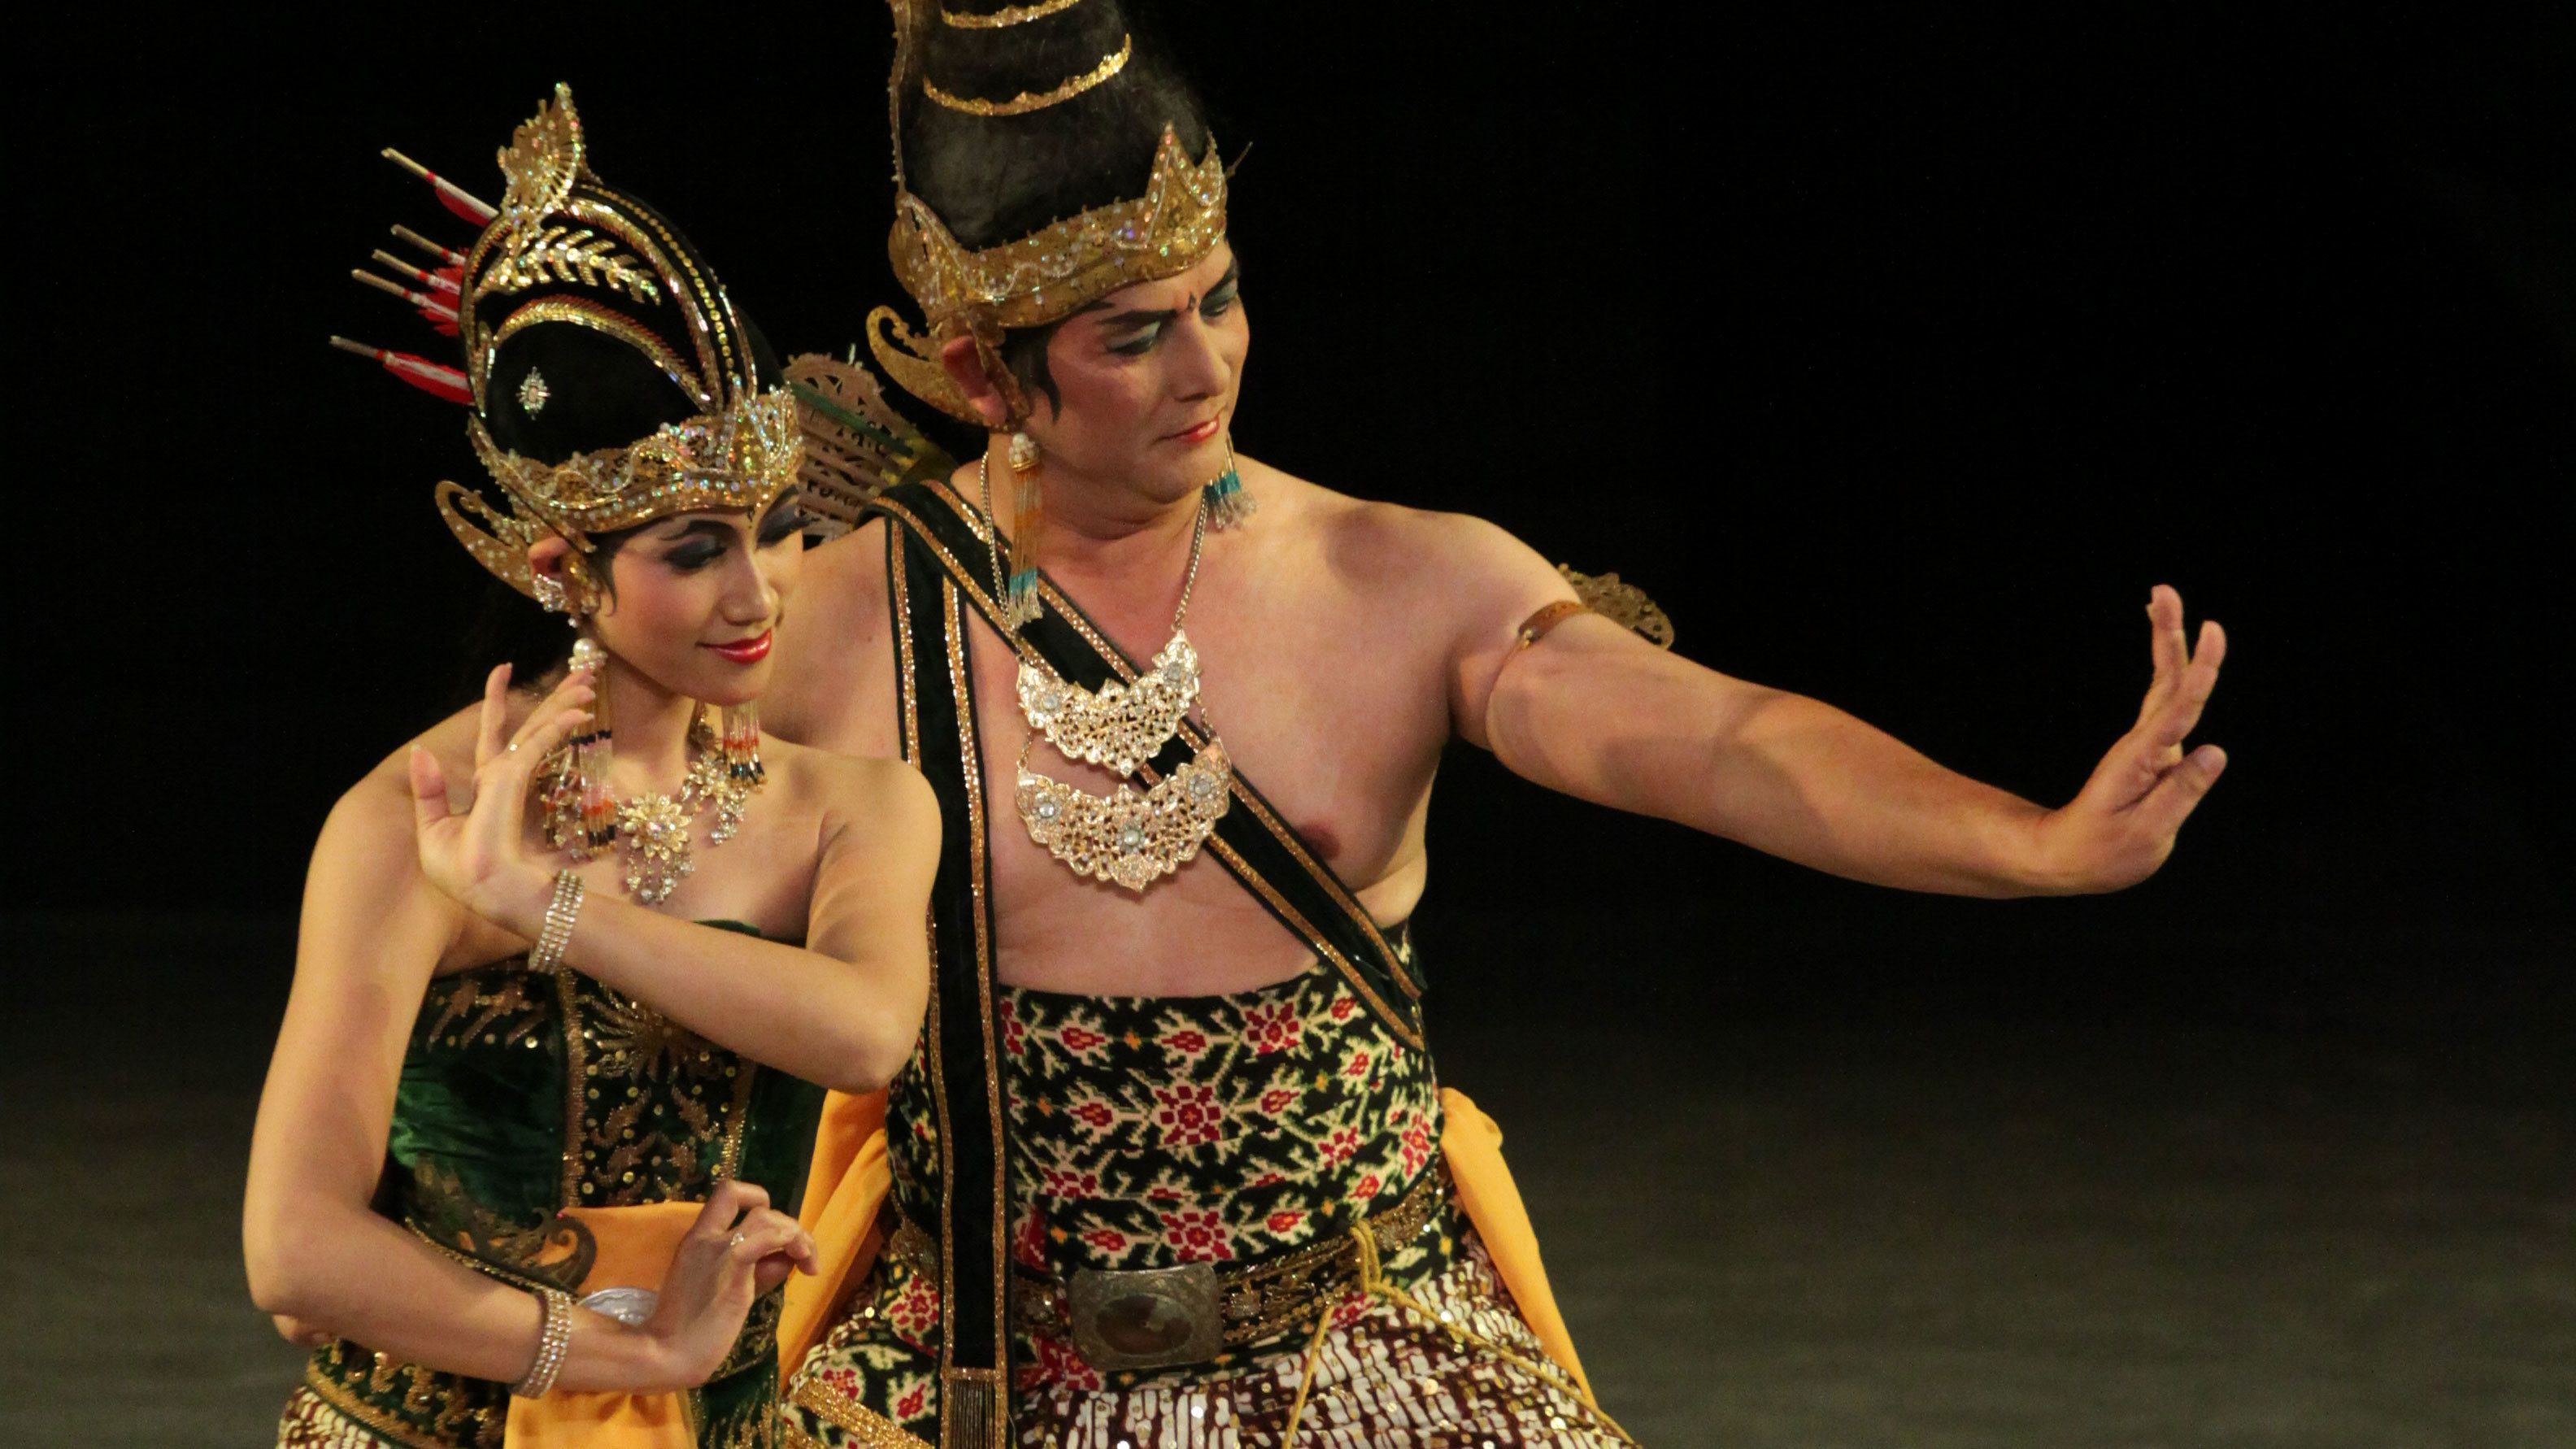 Man and woman dancing onstage in Bali